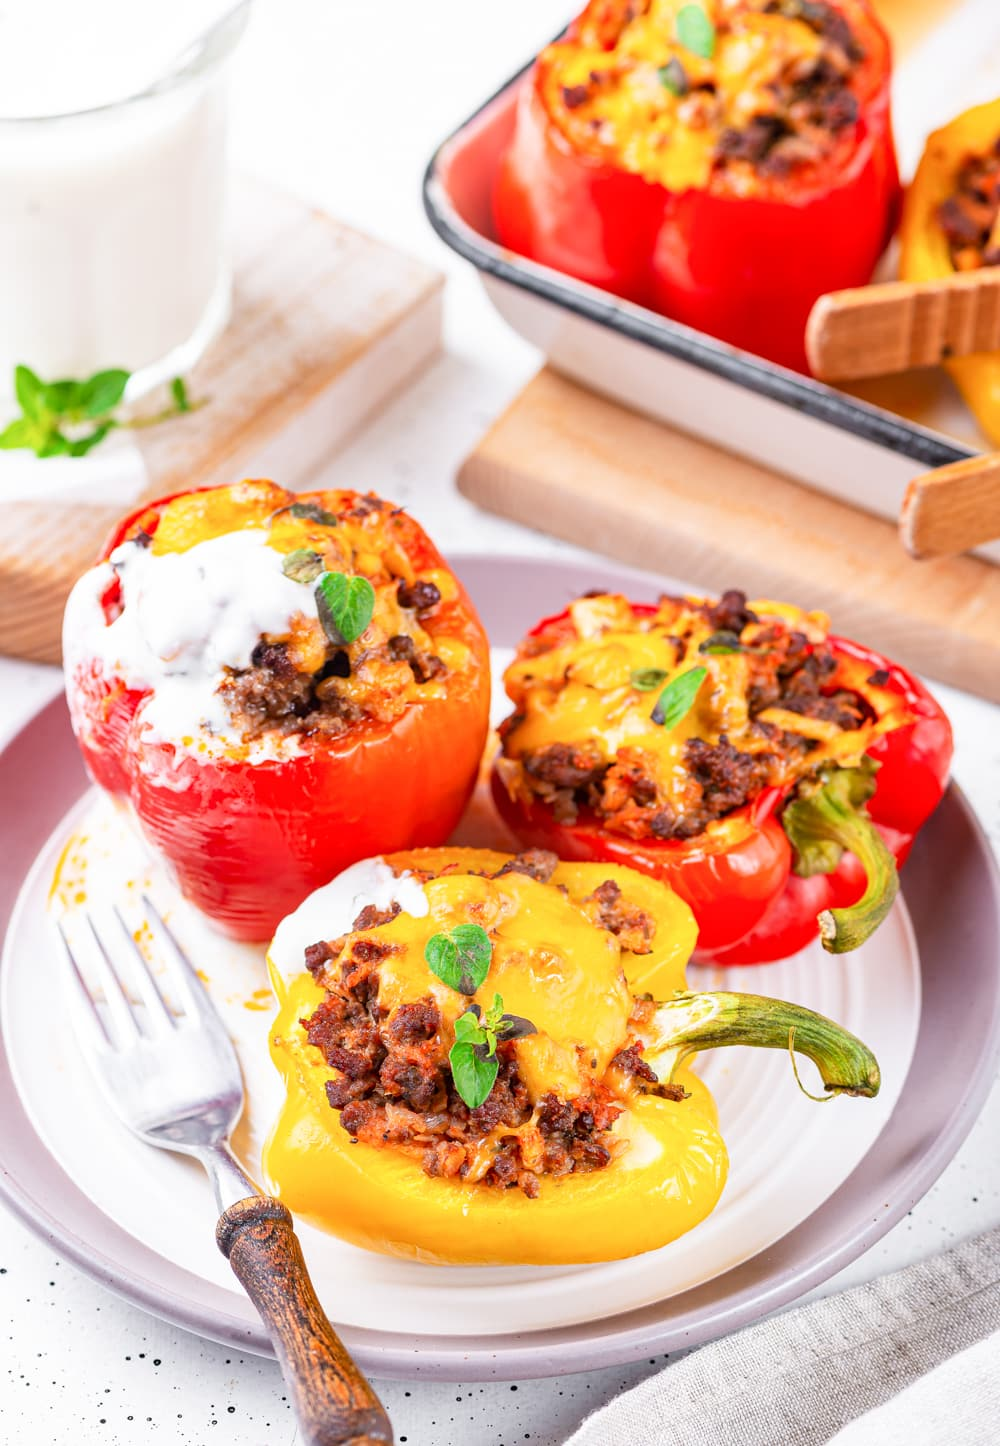 A plate filled with multiple stuffed bell peppers & one of them is topped with sour cream.